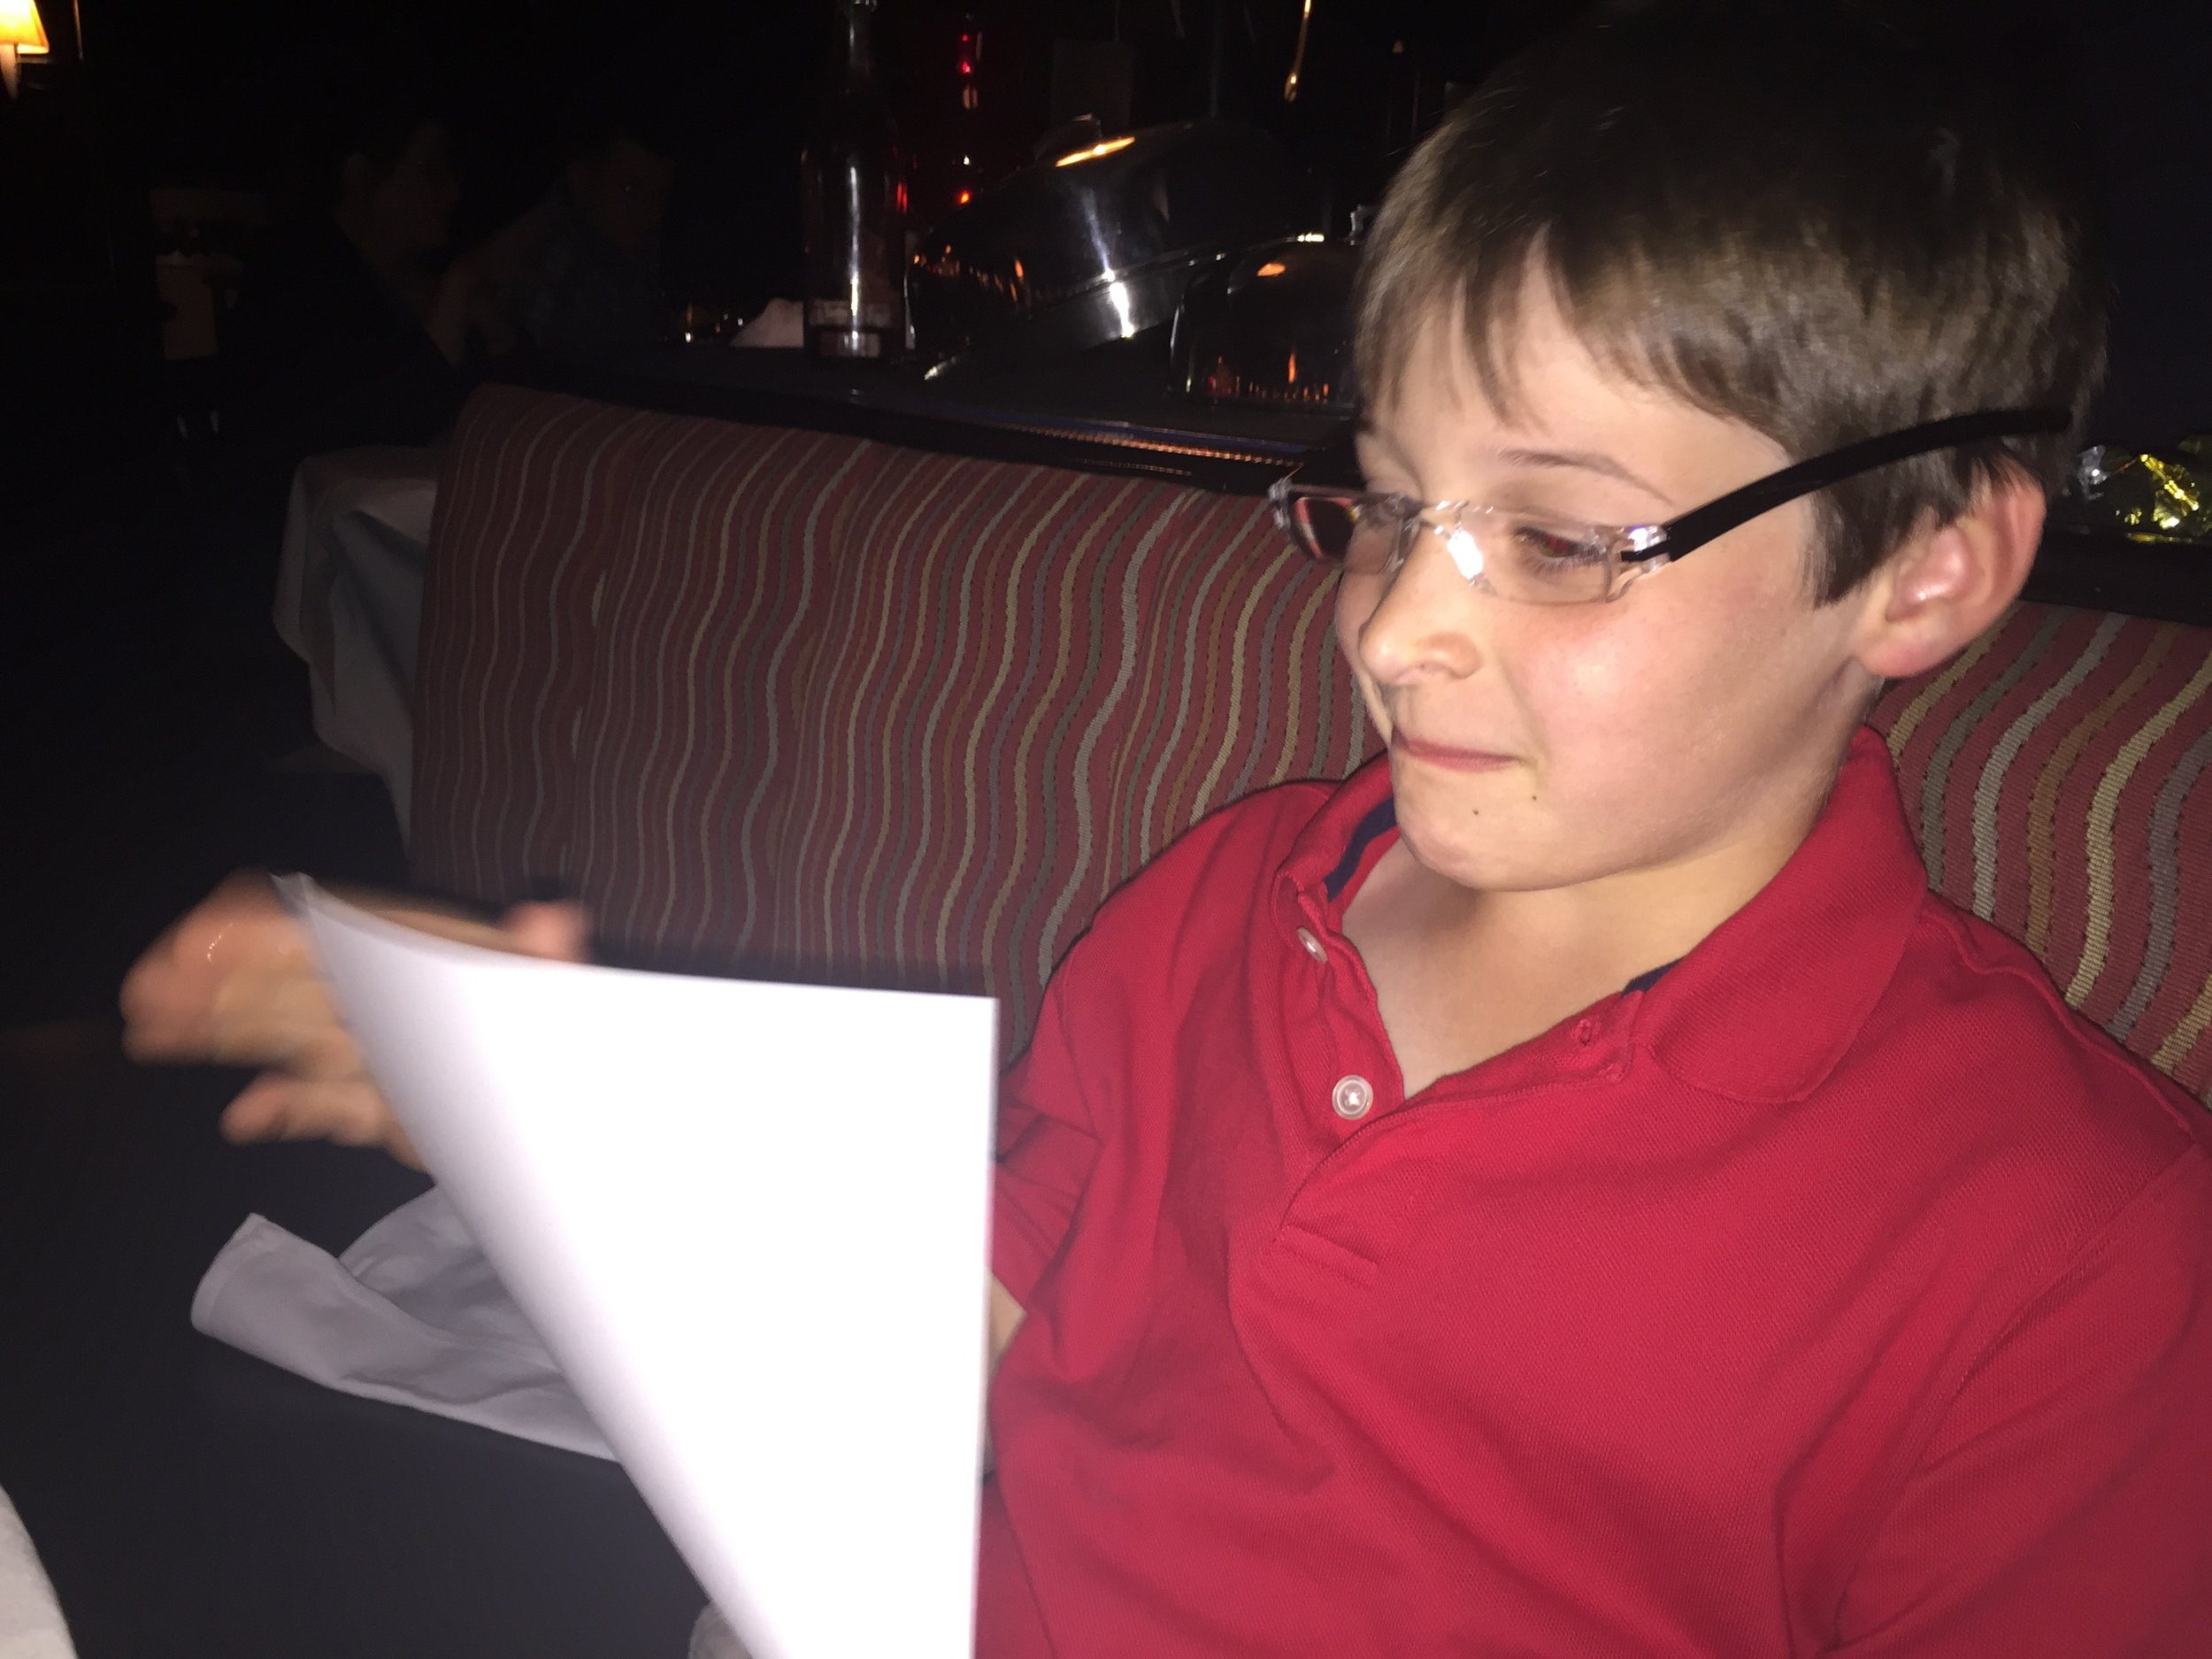 Mr. Belle reviewing a manuscript over a working dinner.